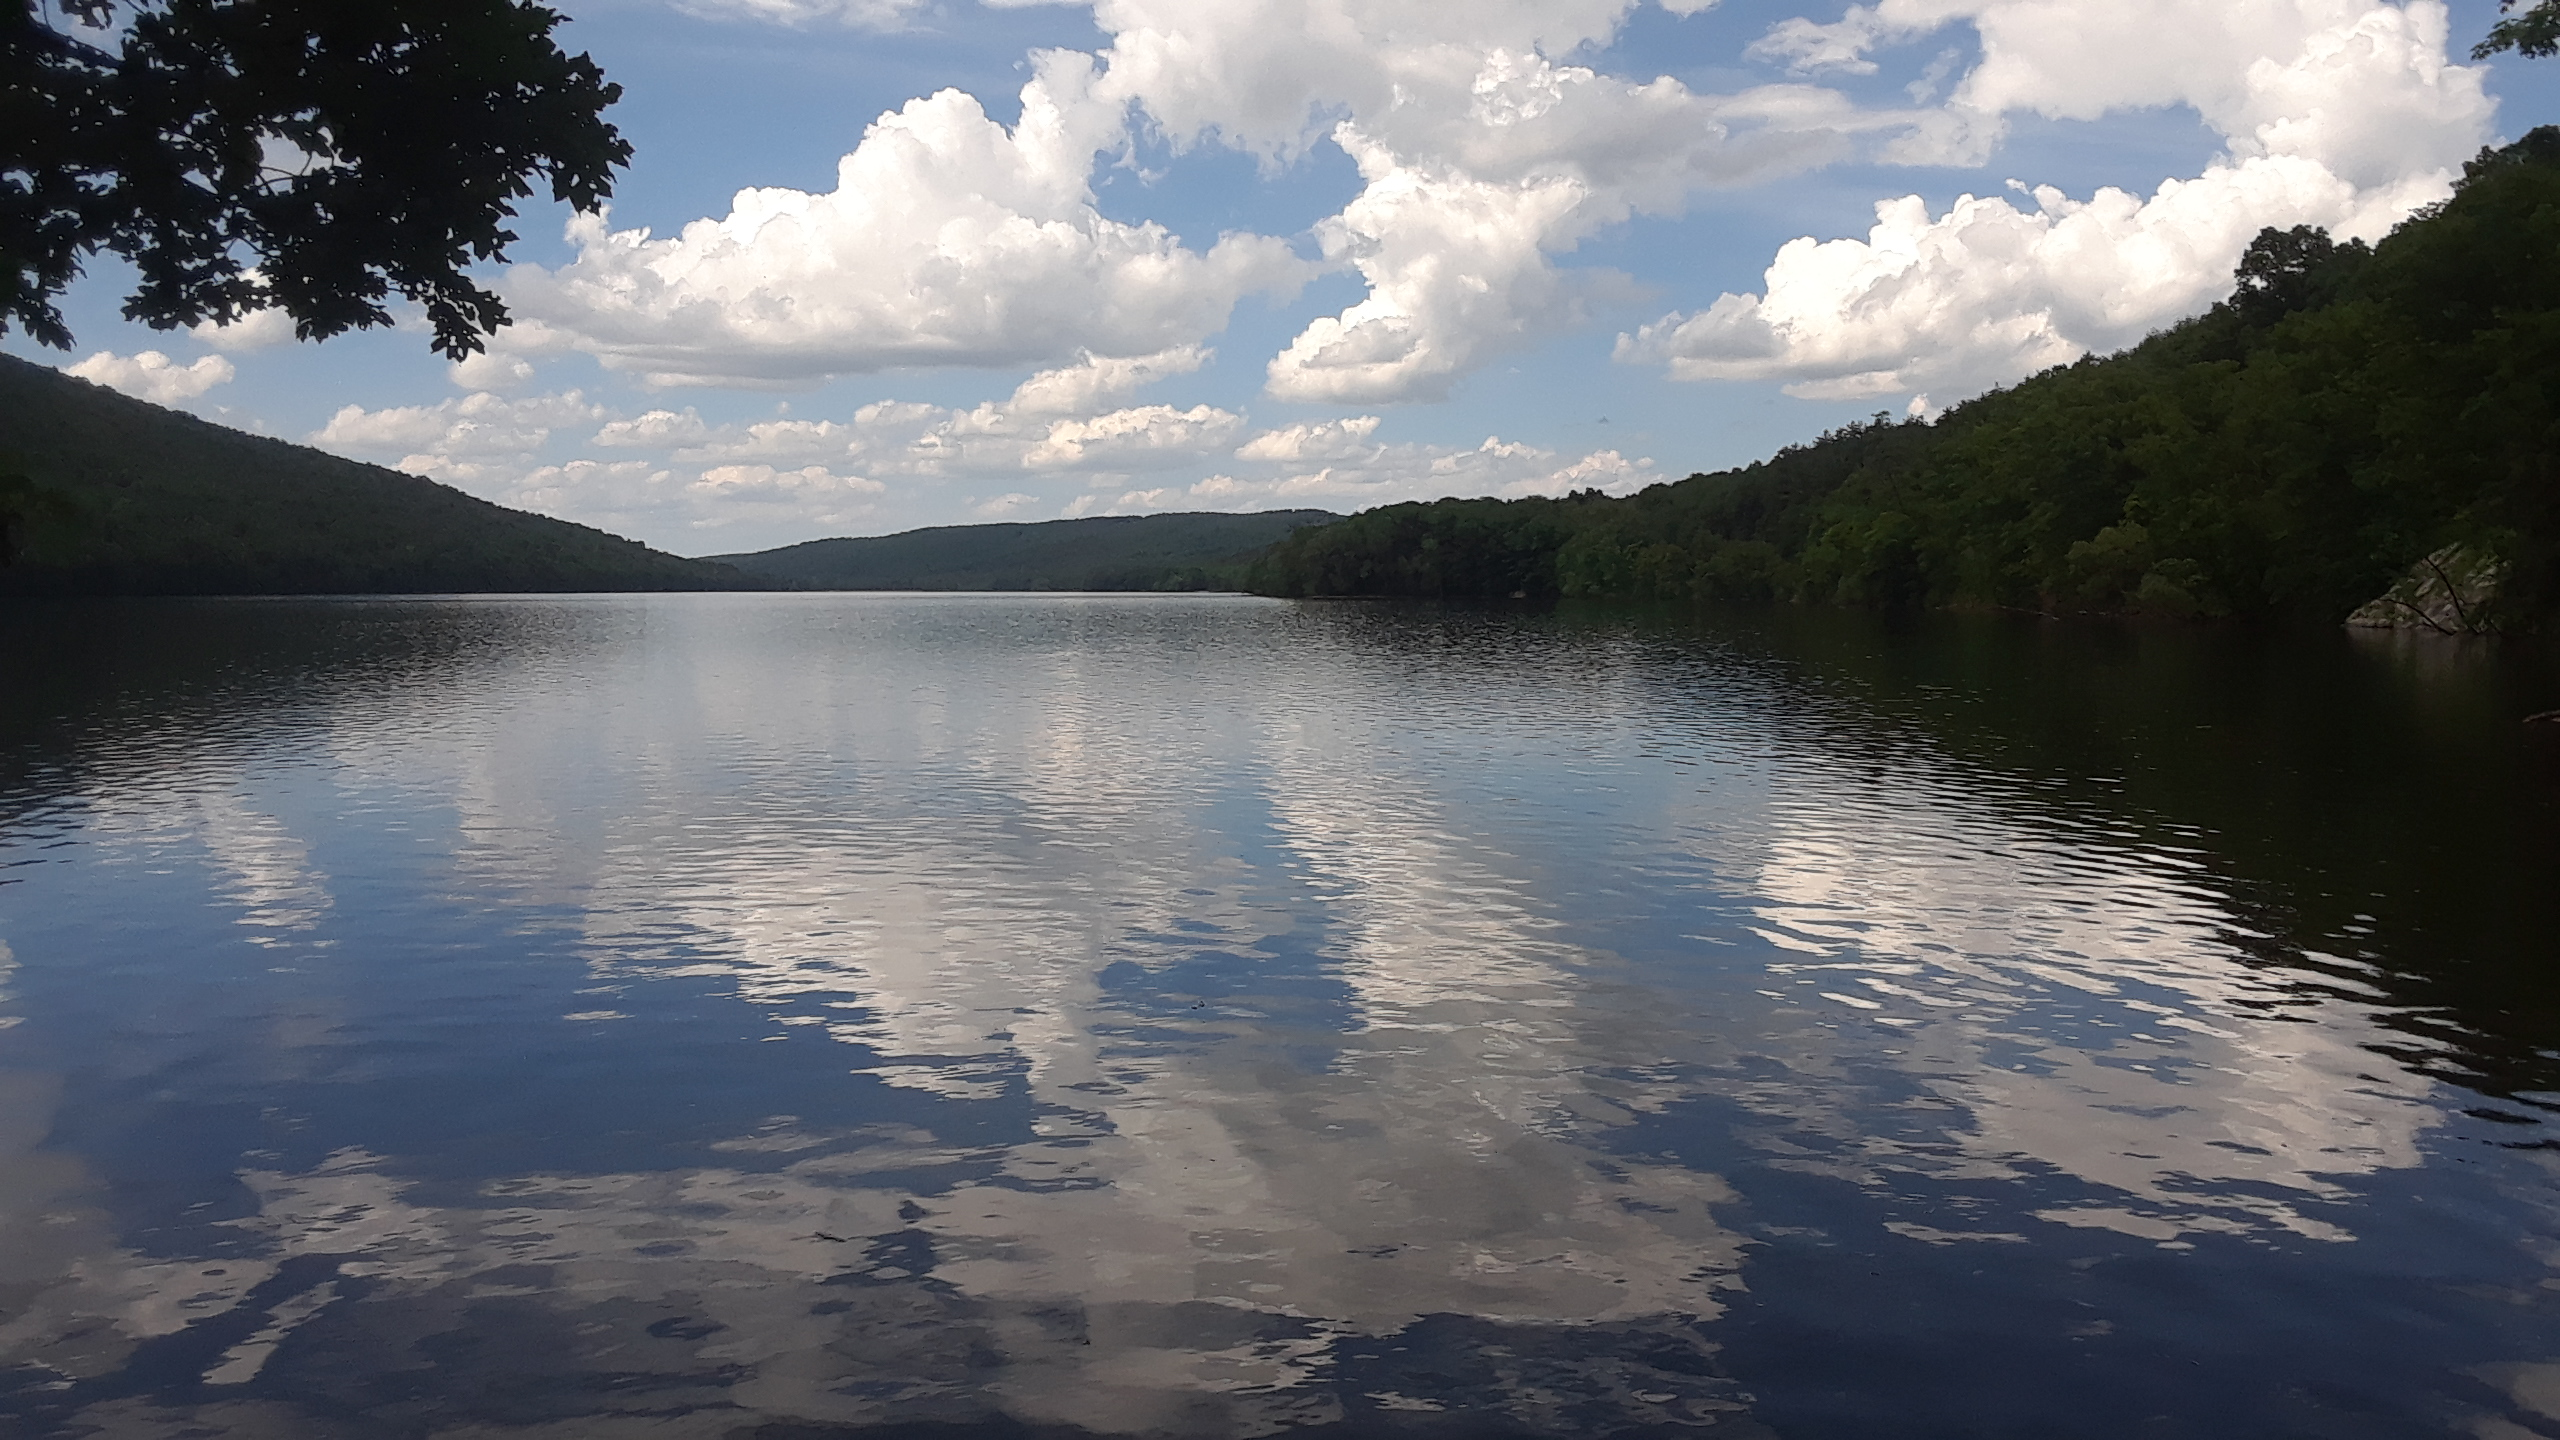 Canadice Lake, Finger Lake Region of New York